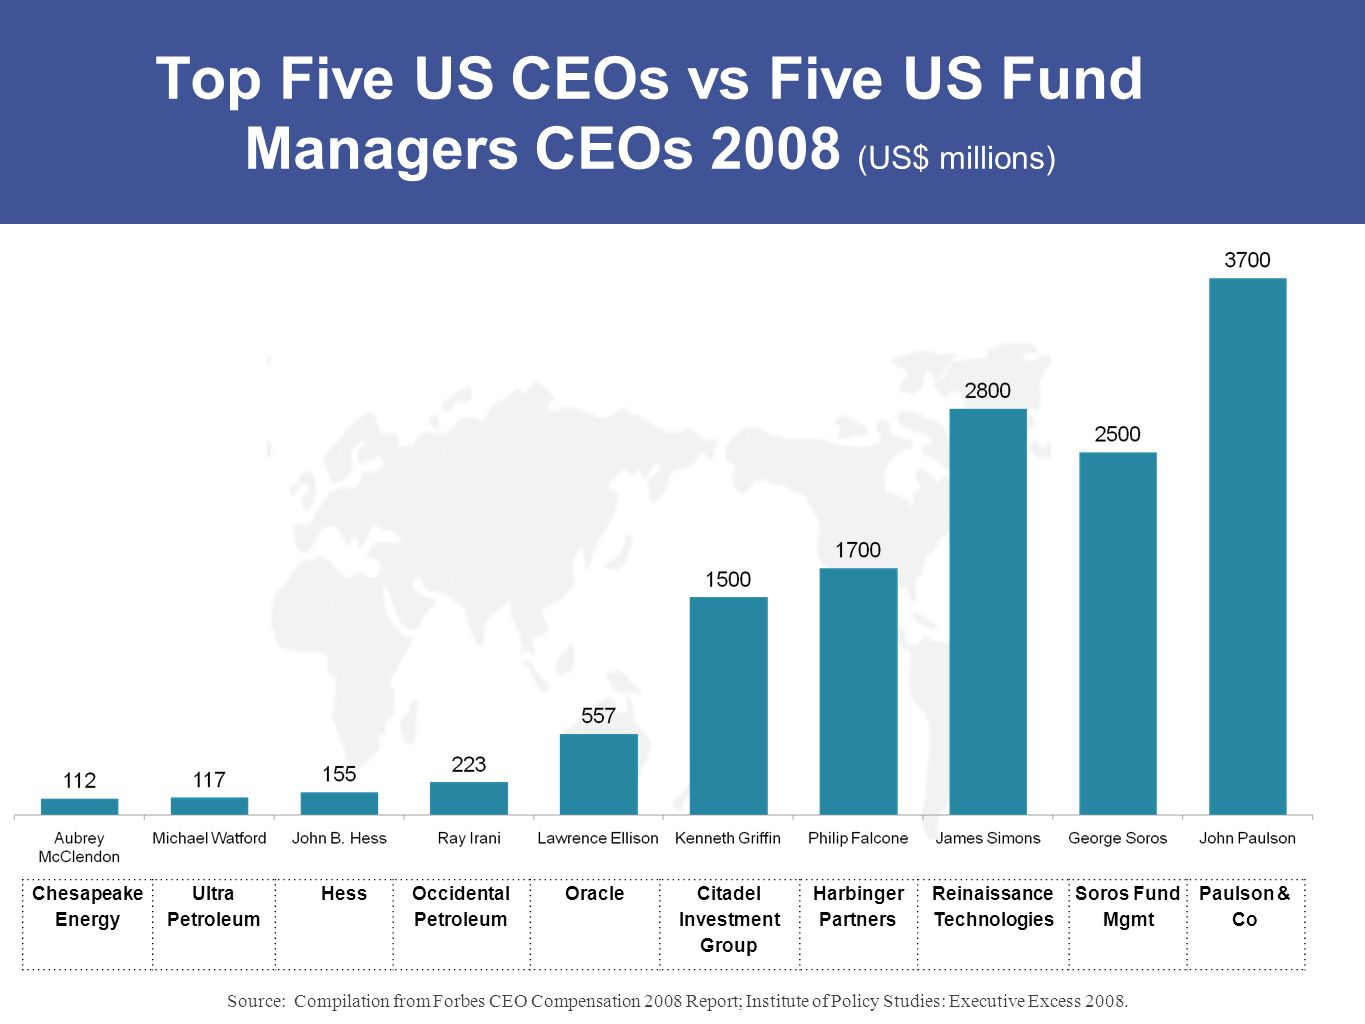 Top Five US CEOs vs Five US Fund Managers CEOs 2008 (US$ millions)